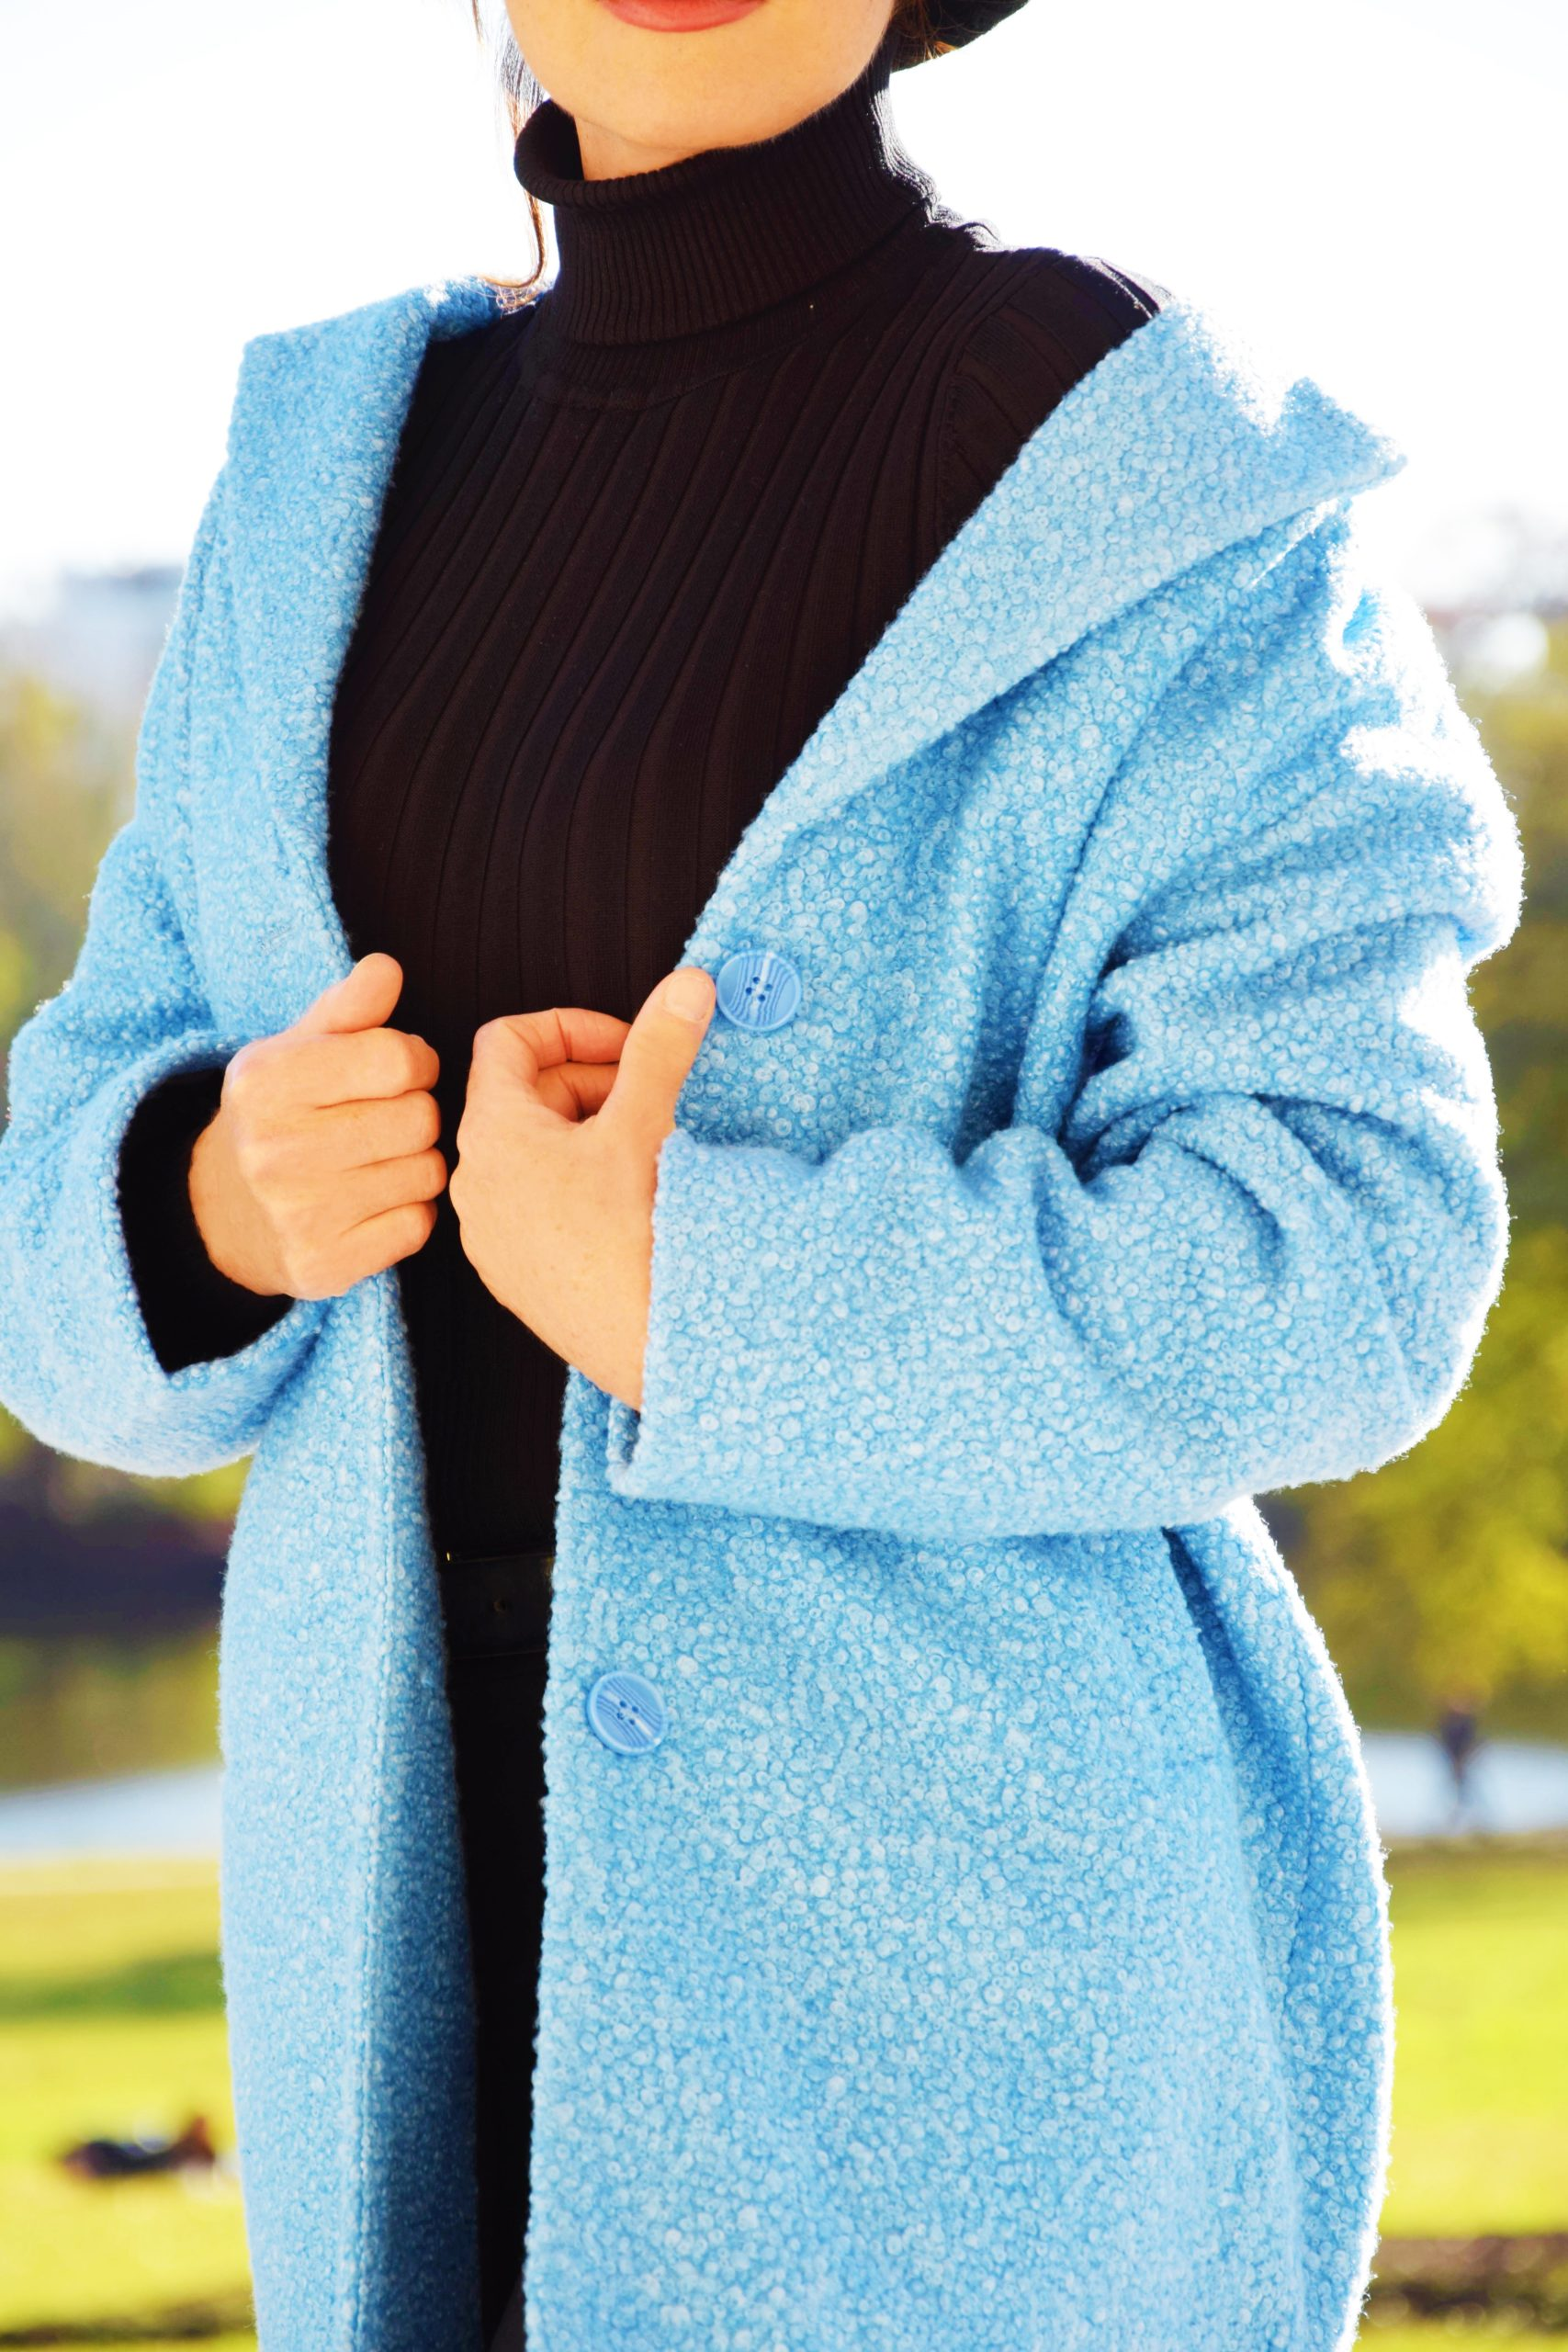 nelly berthele manteau bleu